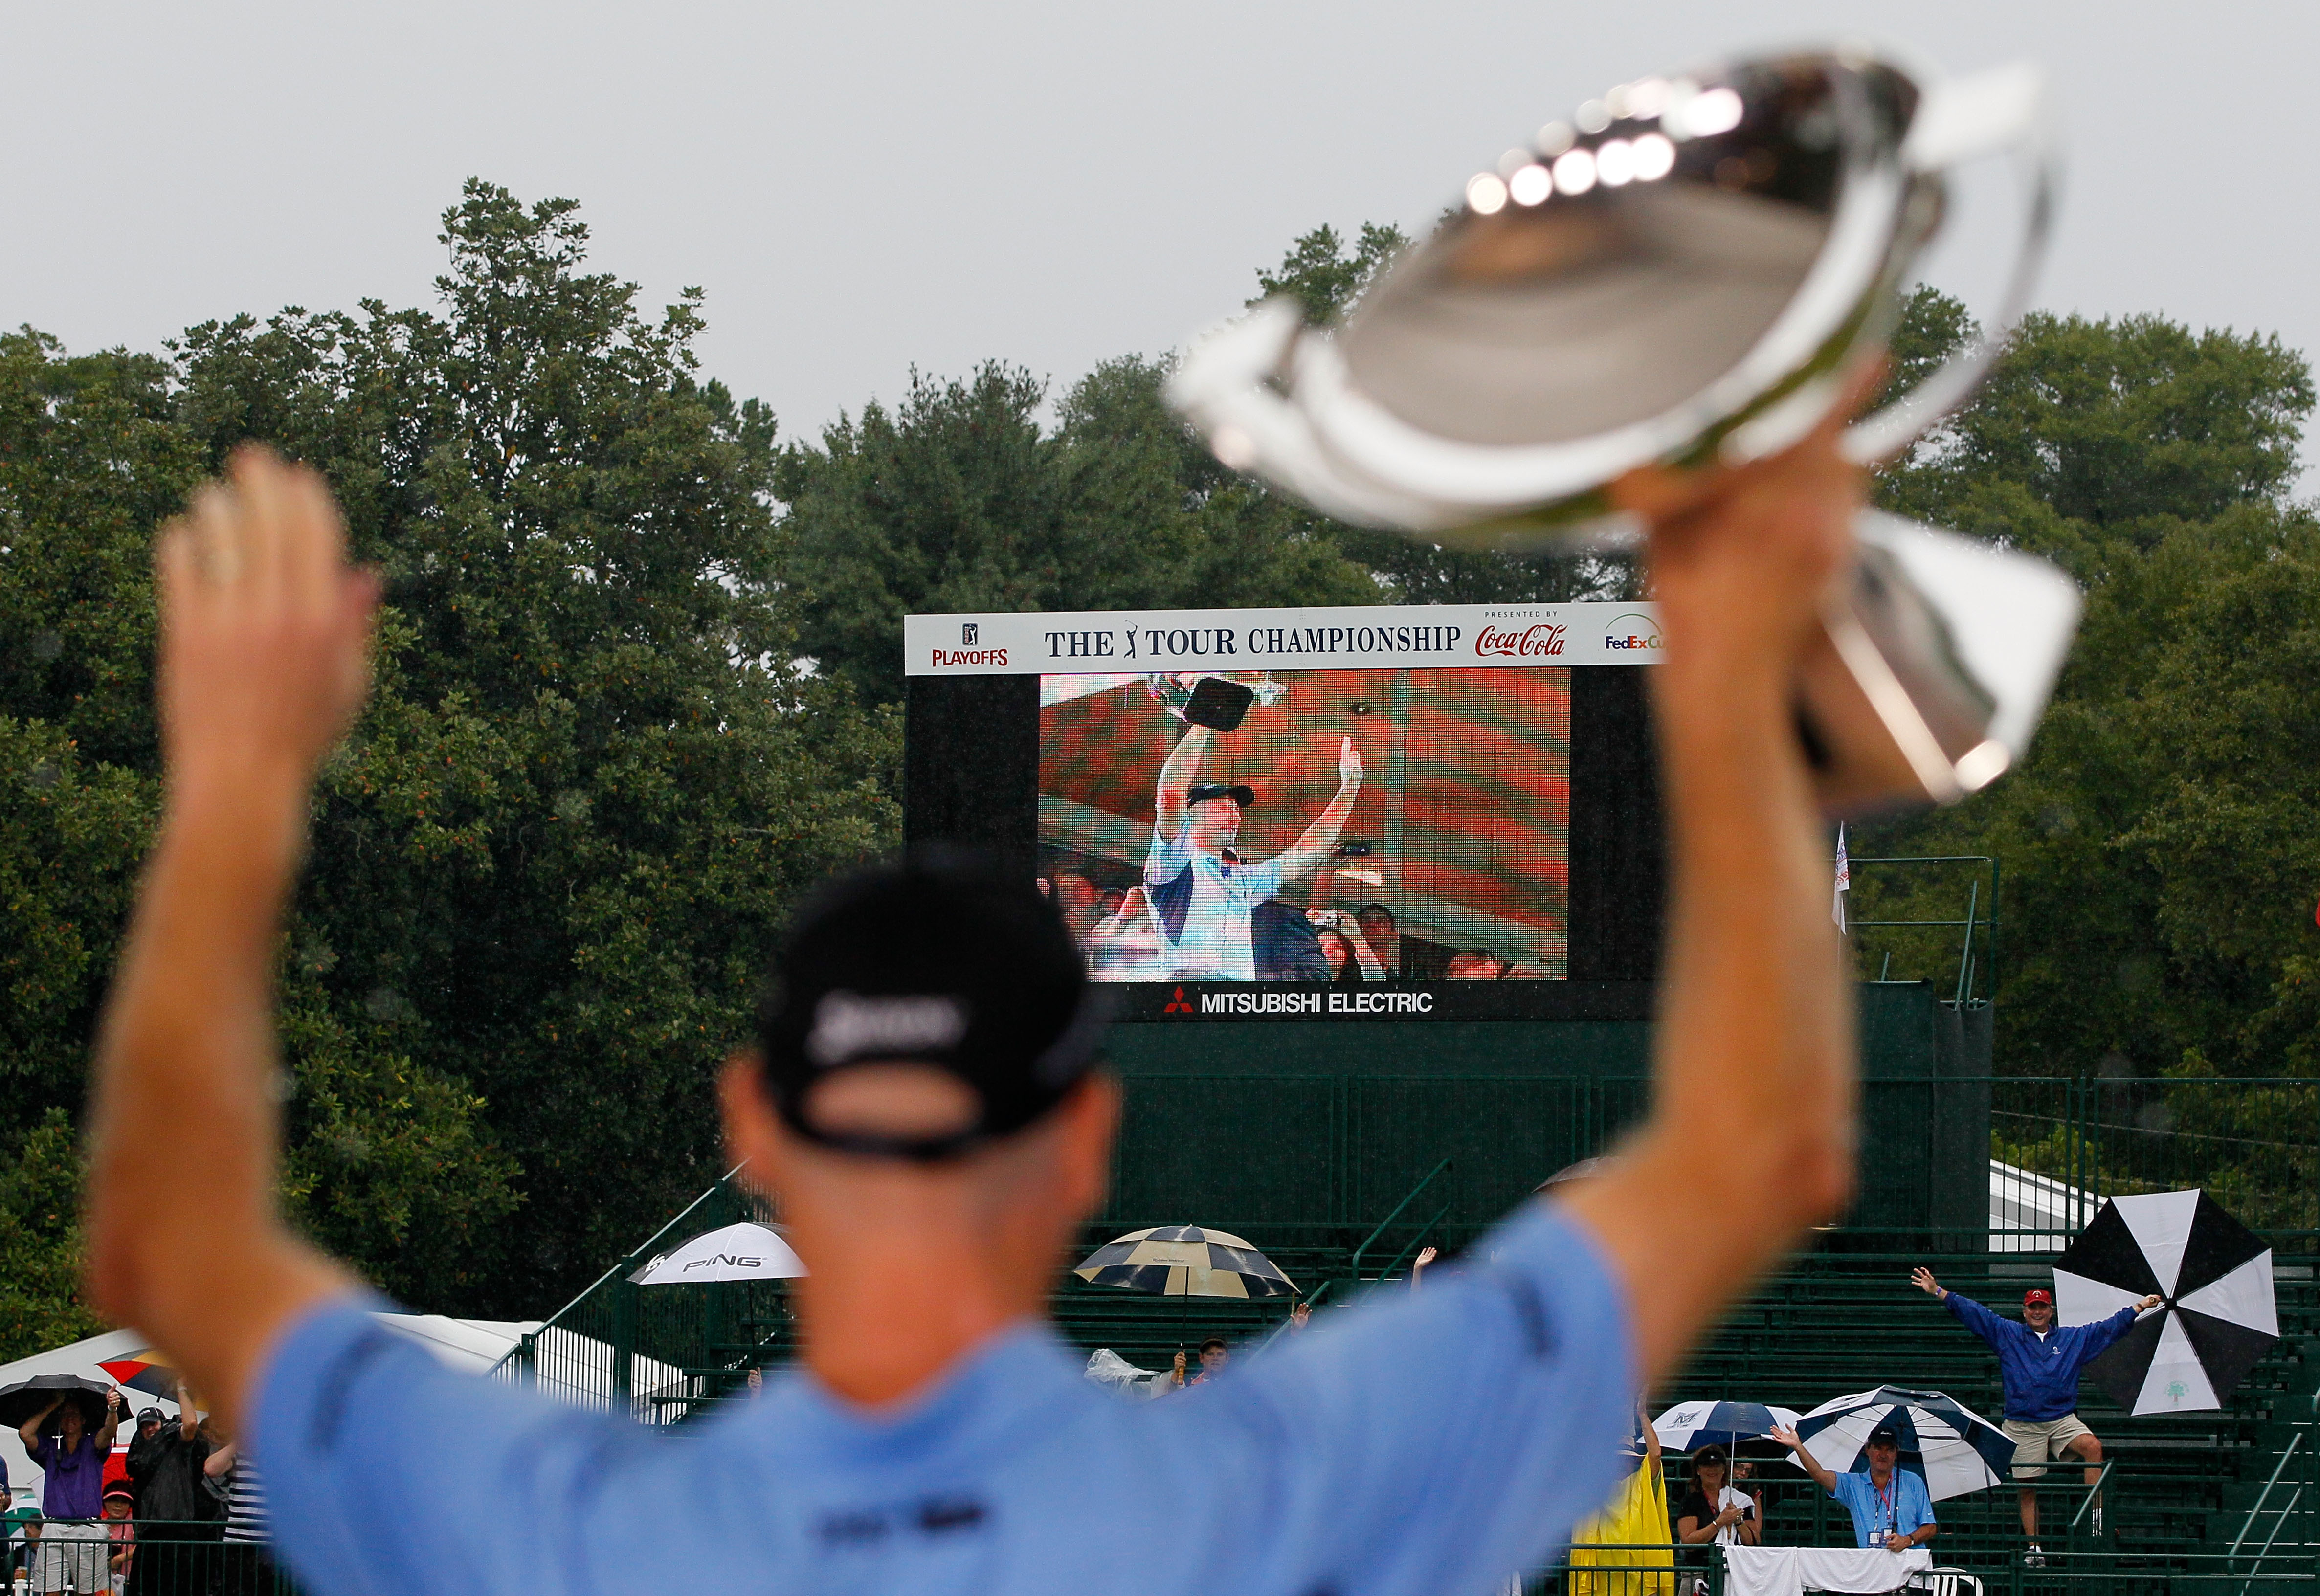 Jim Furyk celebrates after winning the 2010 FedEx Cup (Photo by Kevin C. Cox/Getty Images)